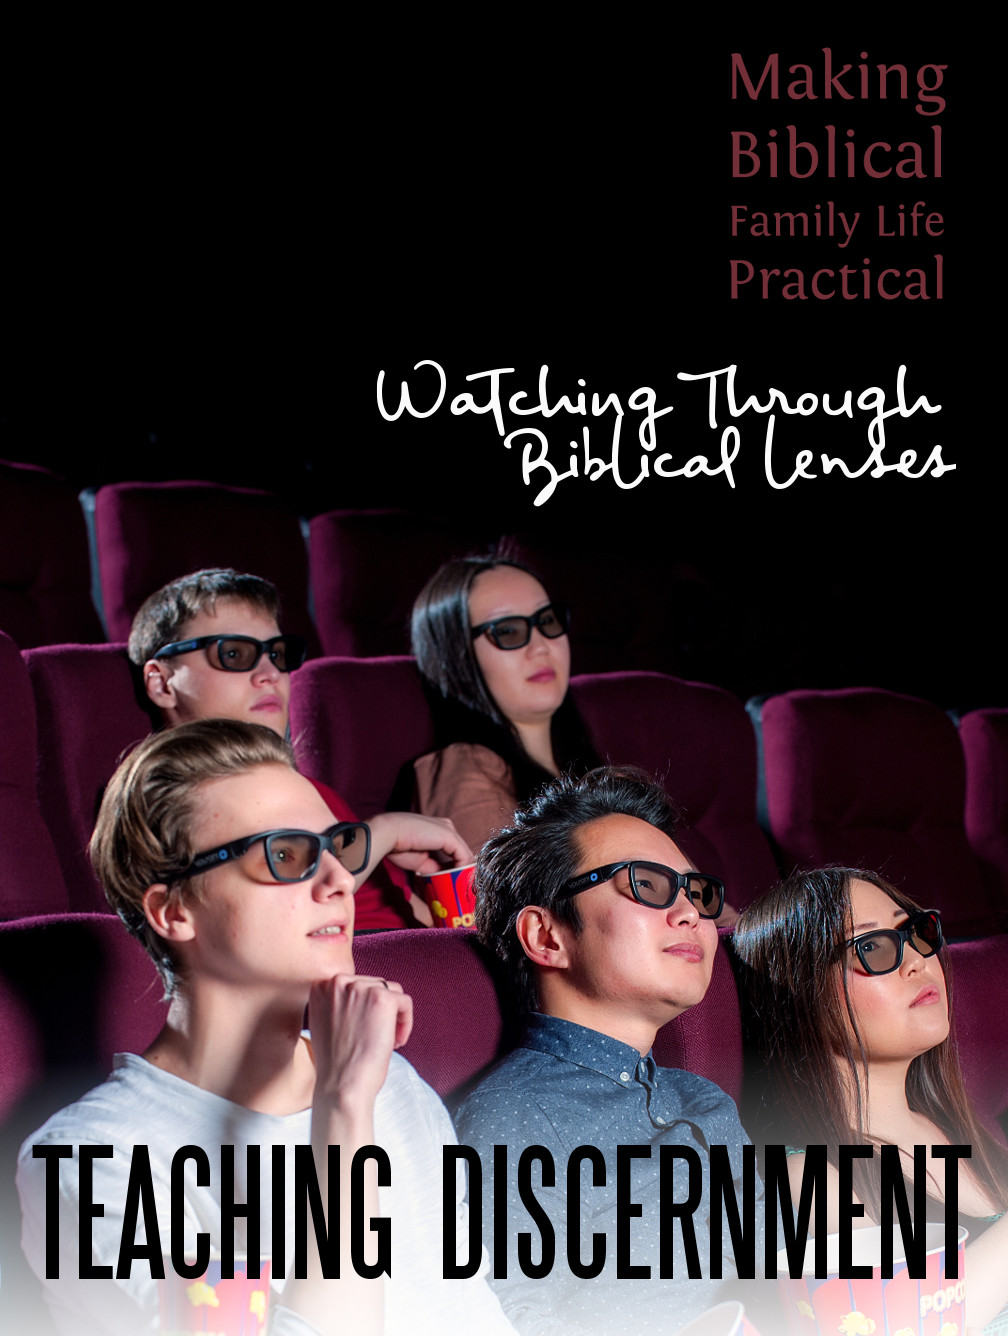 Are your teens watching media with Biblical discernment?